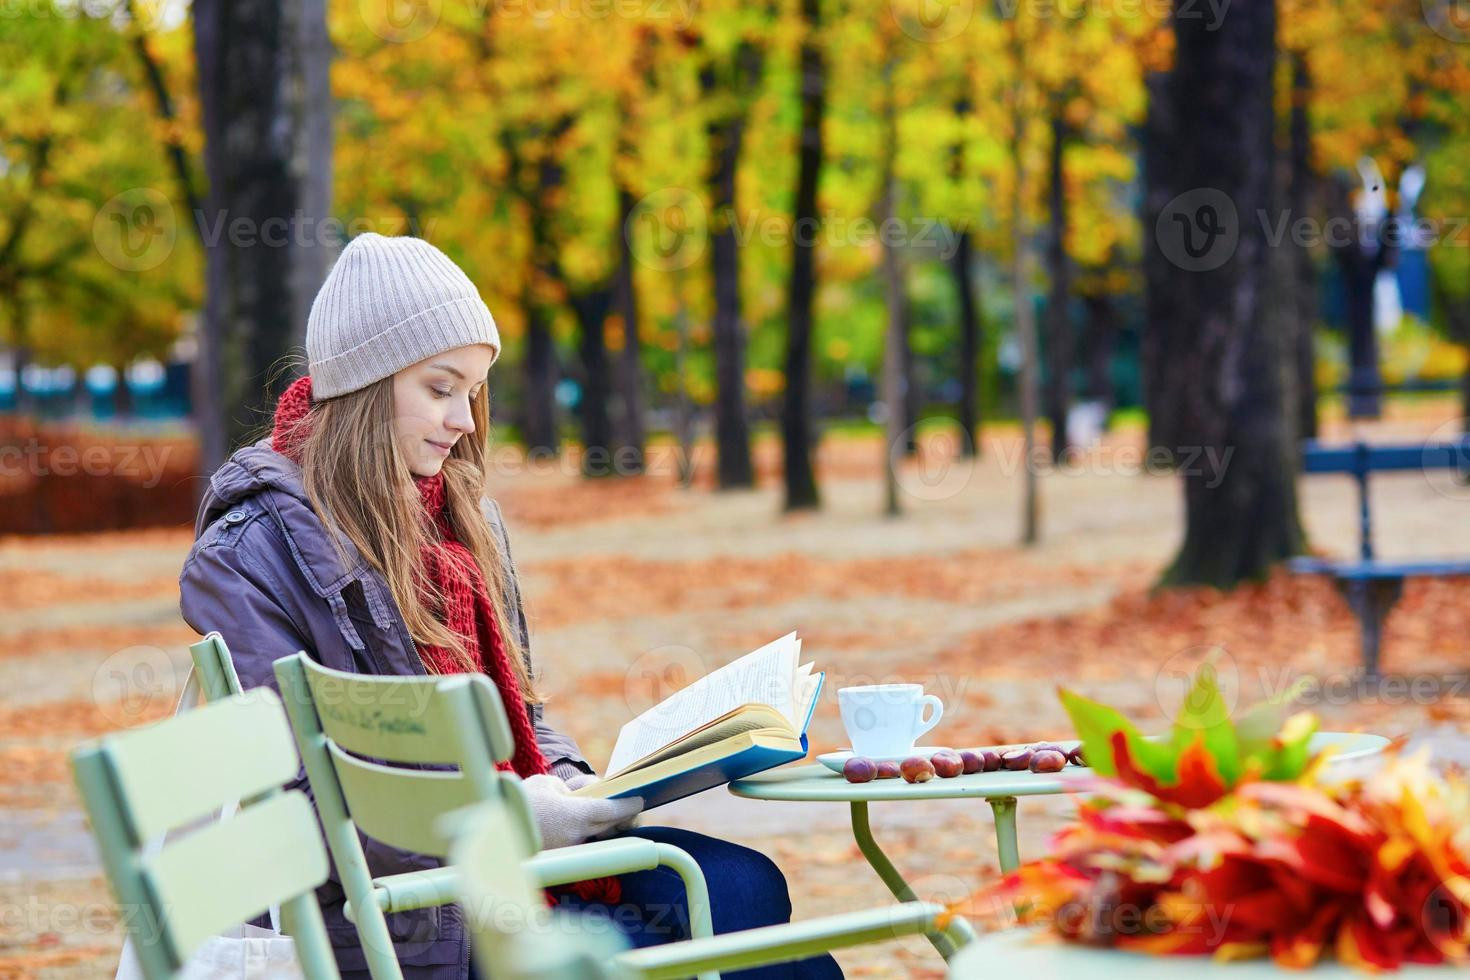 Girl reading a book in an outdoor cafe photo